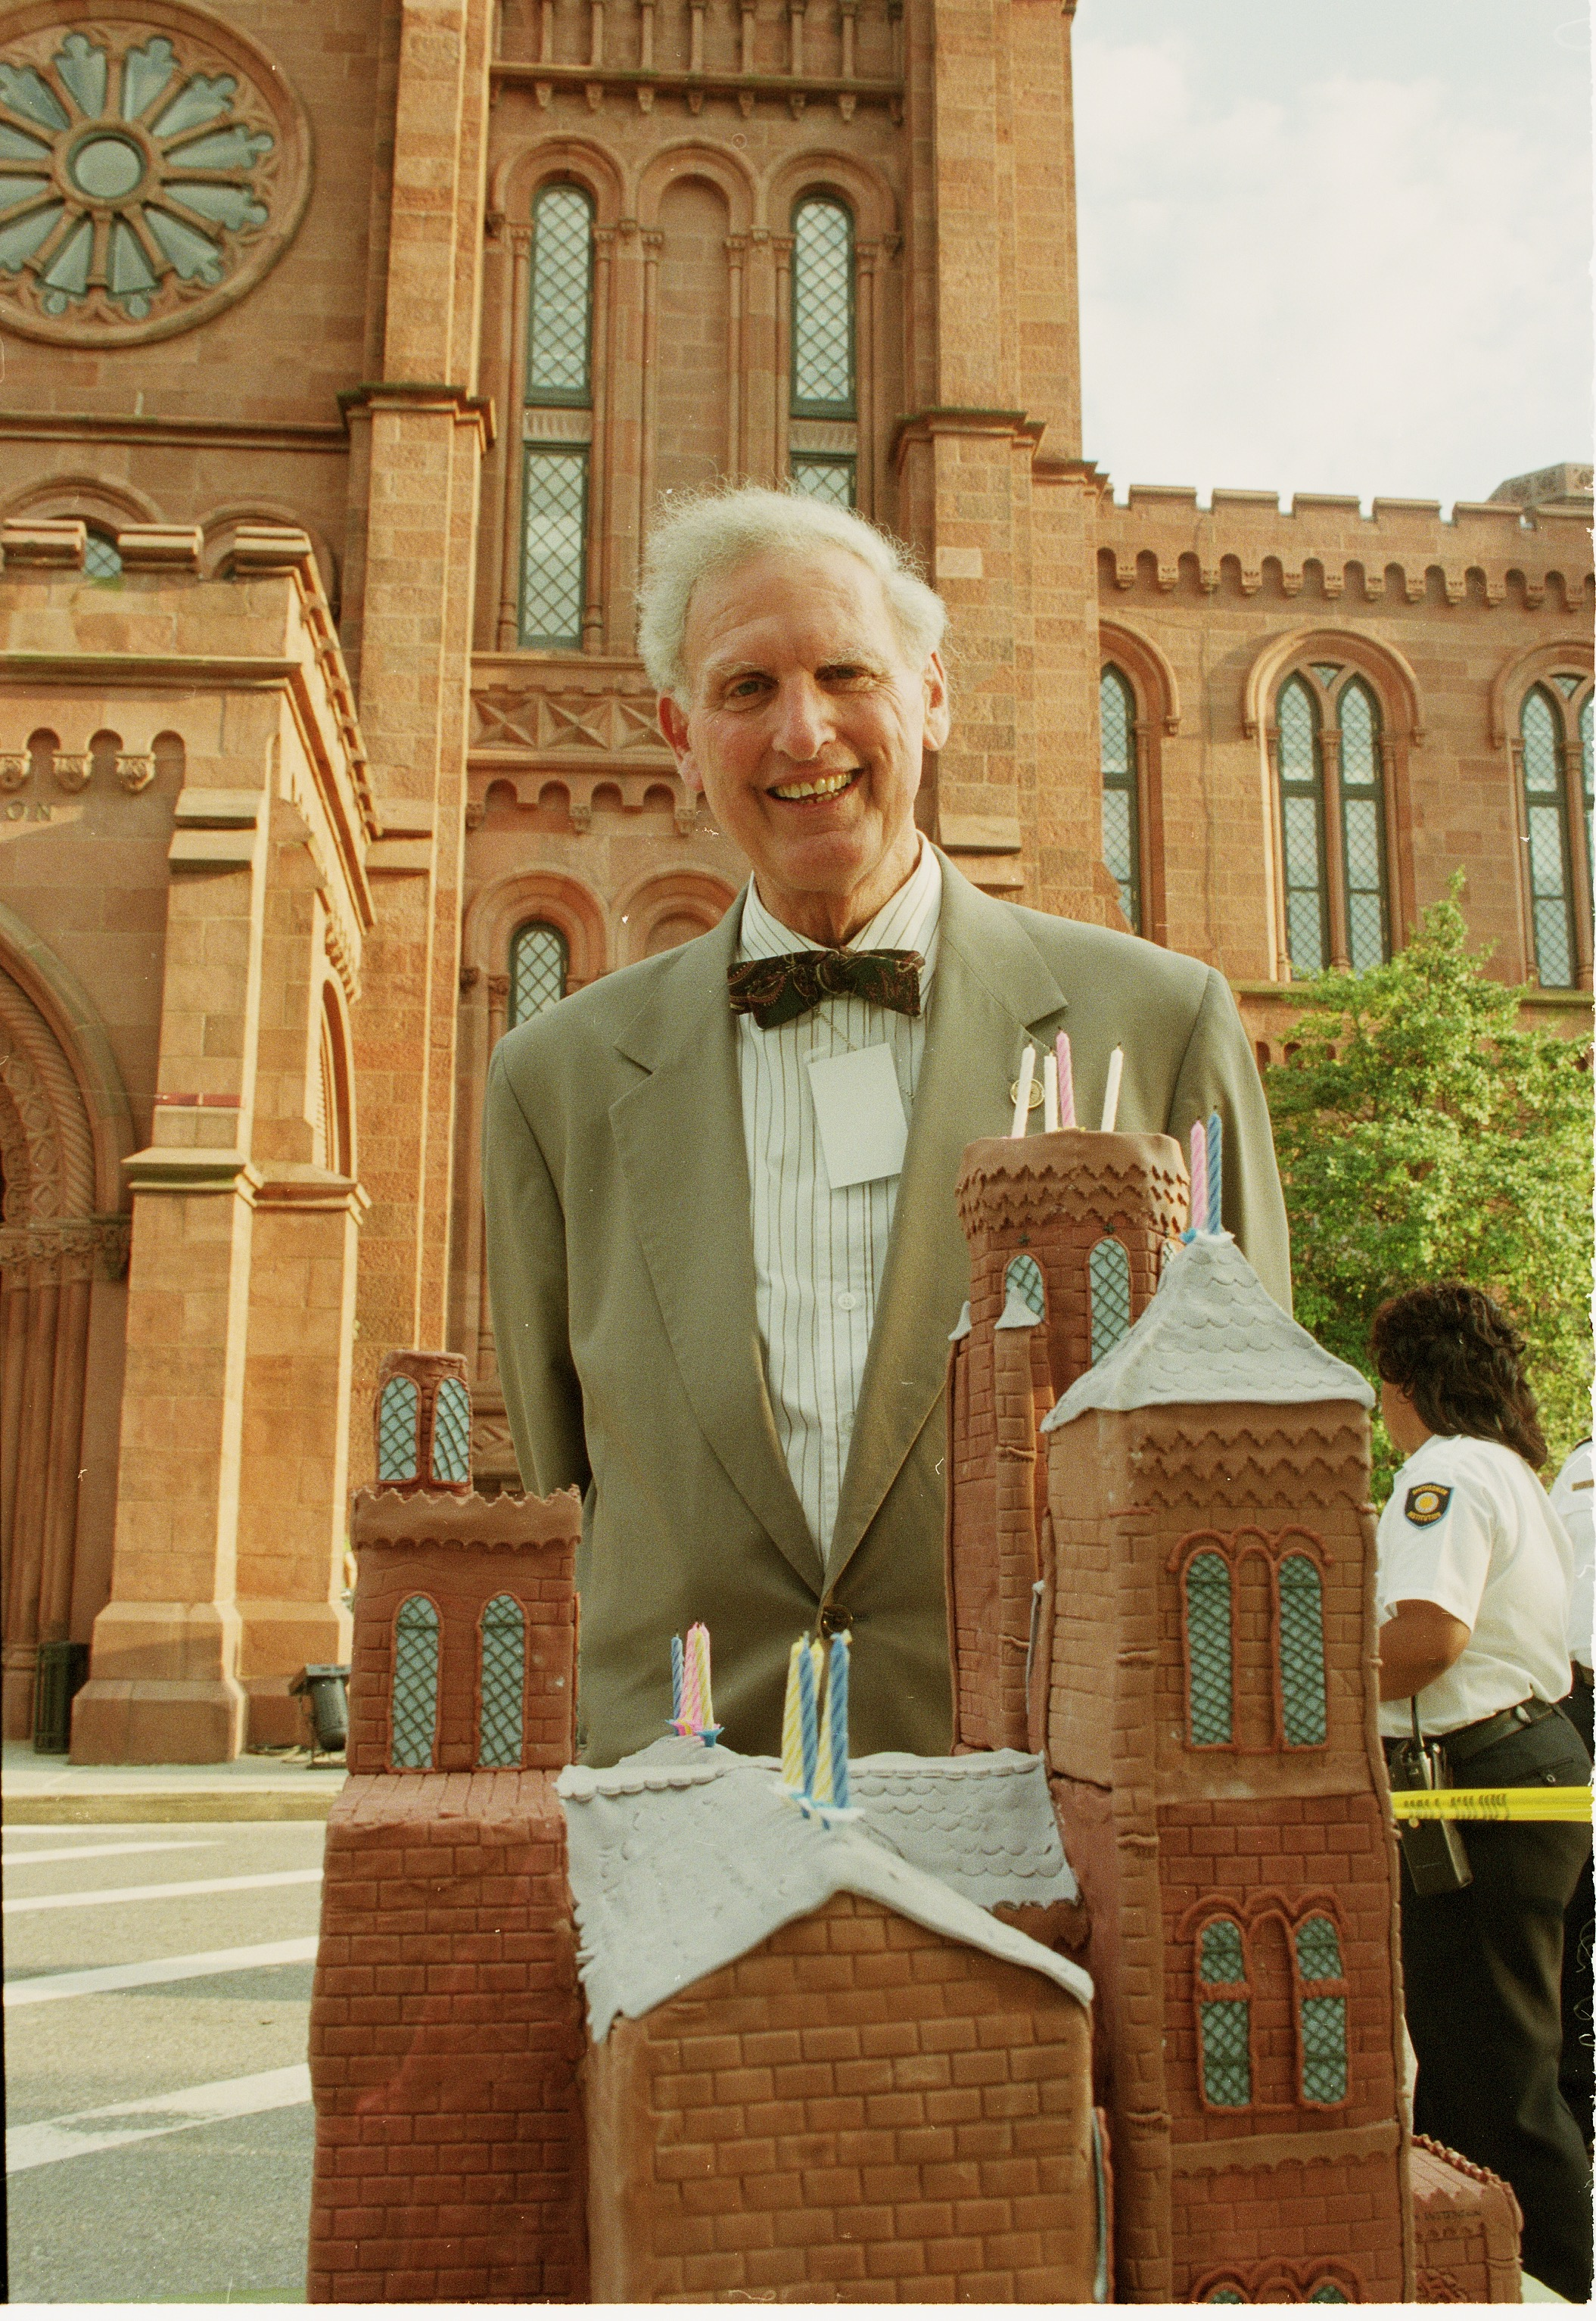 Person in bow tie standing behind a cake built like a building.